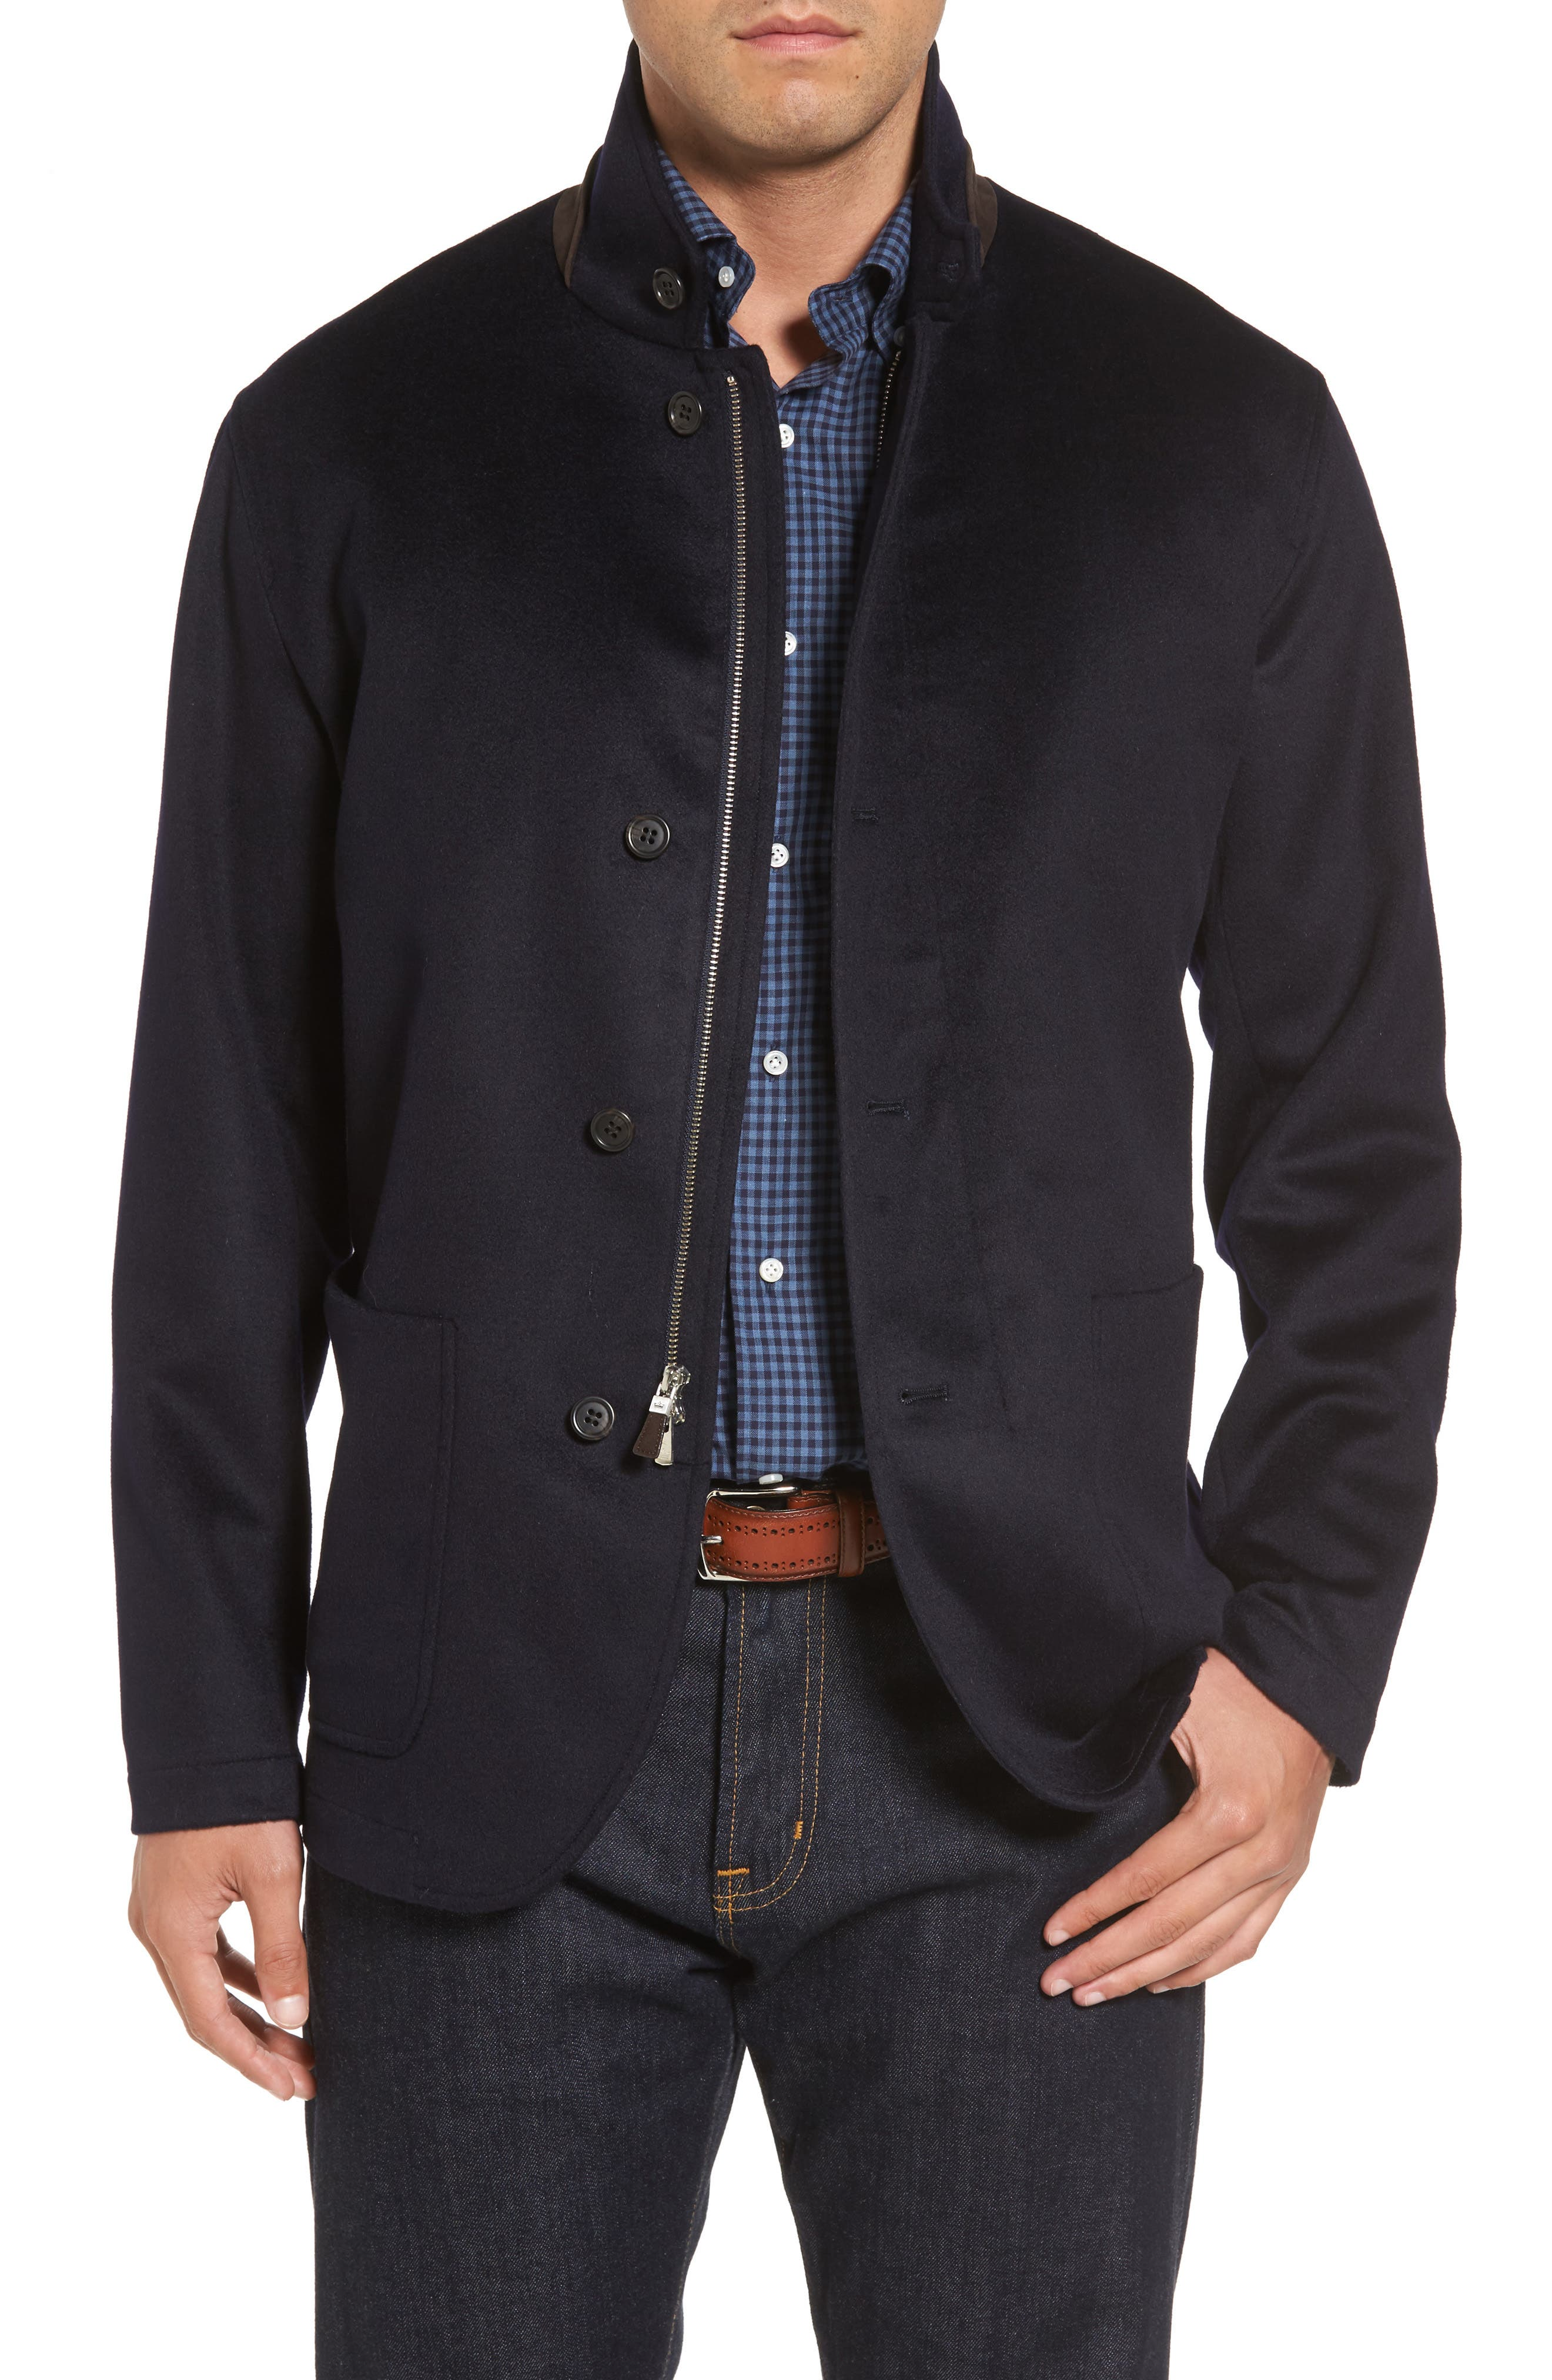 Crown Wool & Cashmere Jacket,                             Main thumbnail 1, color,                             410